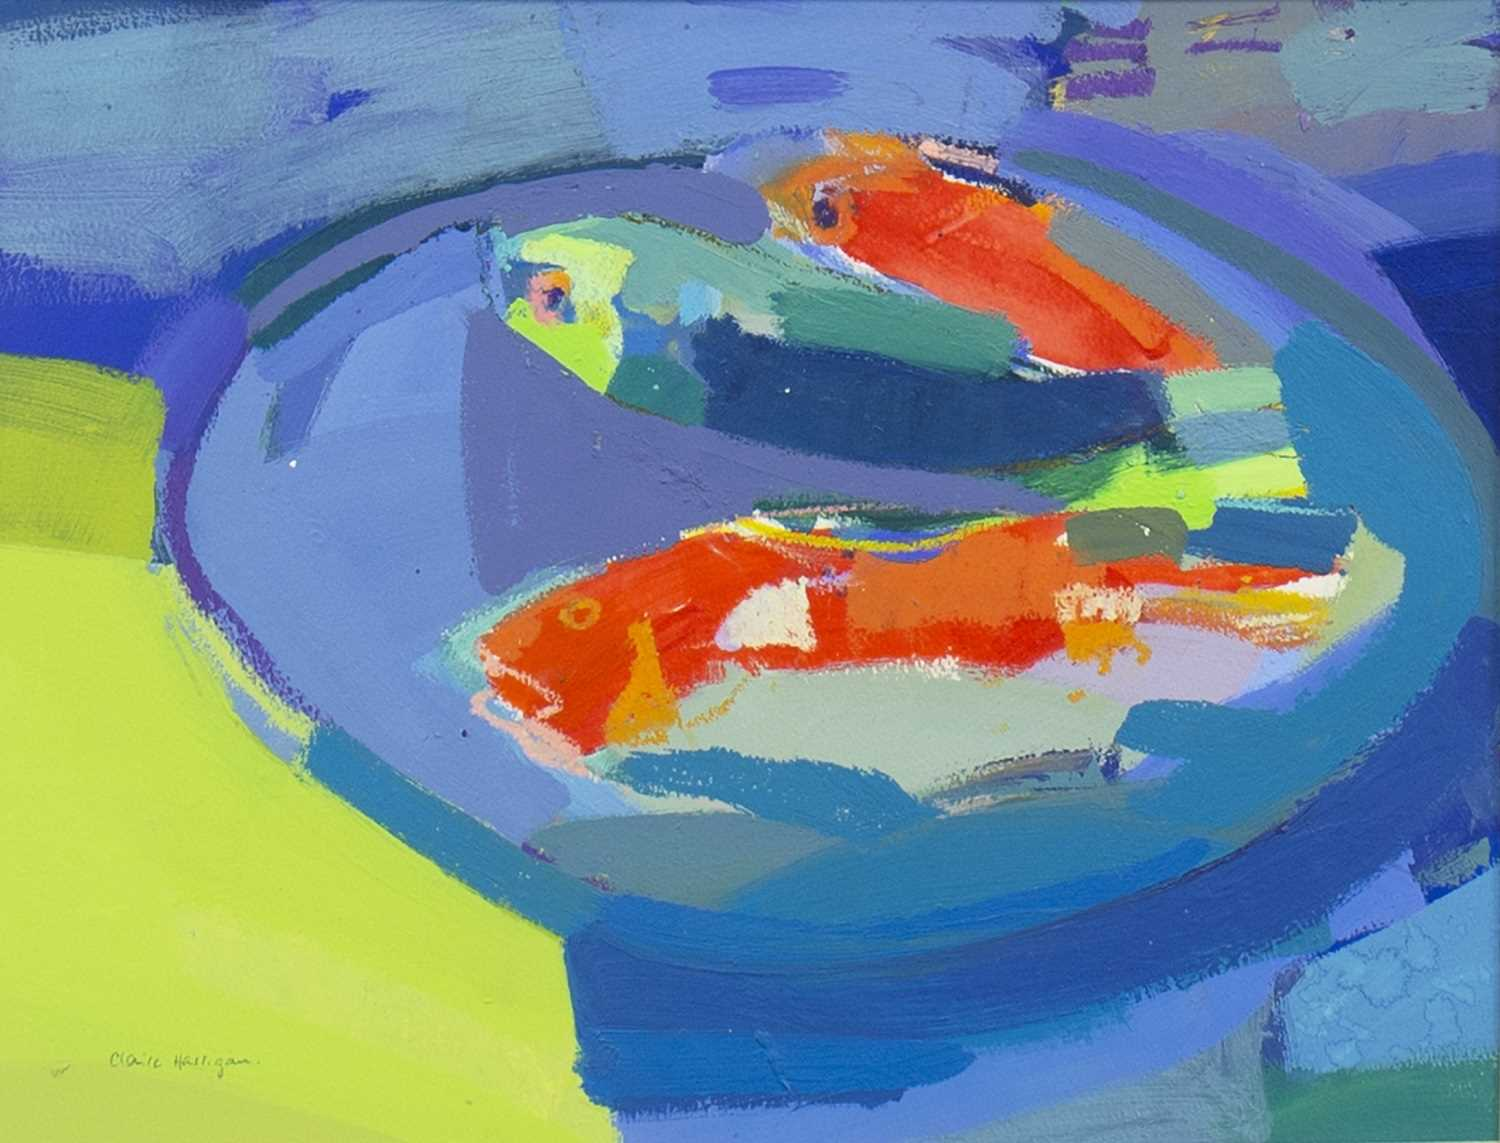 Lot 542-RED SNAPPERS AND BLUE PARROT FISH, A MIXED MEDIA BY CLAIRE HARRIGAN